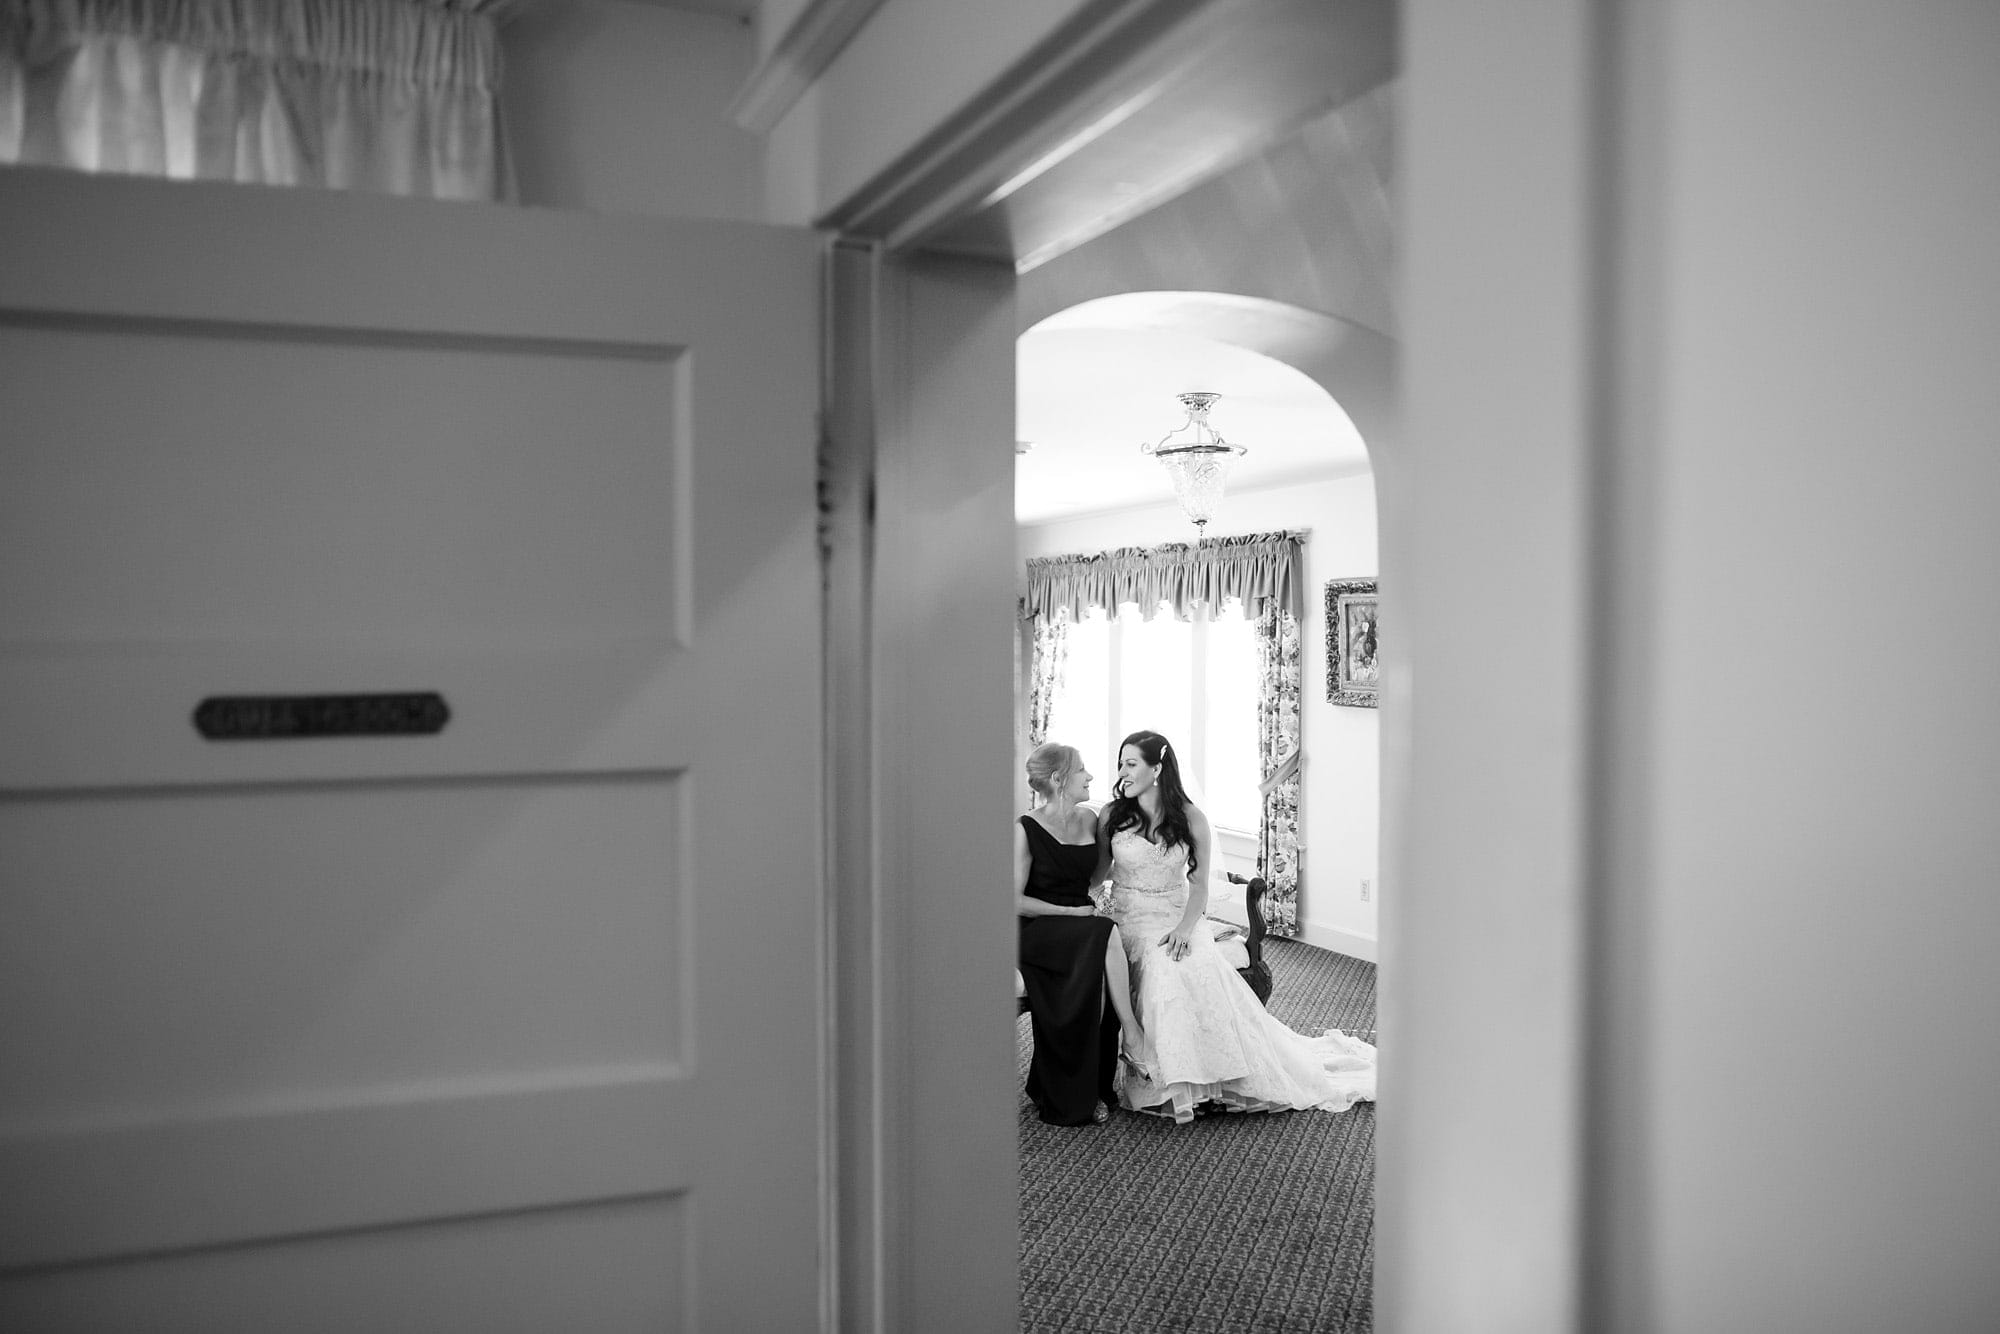 Gina and her monther have a moment before her wedding inside Willow Ridge Manor